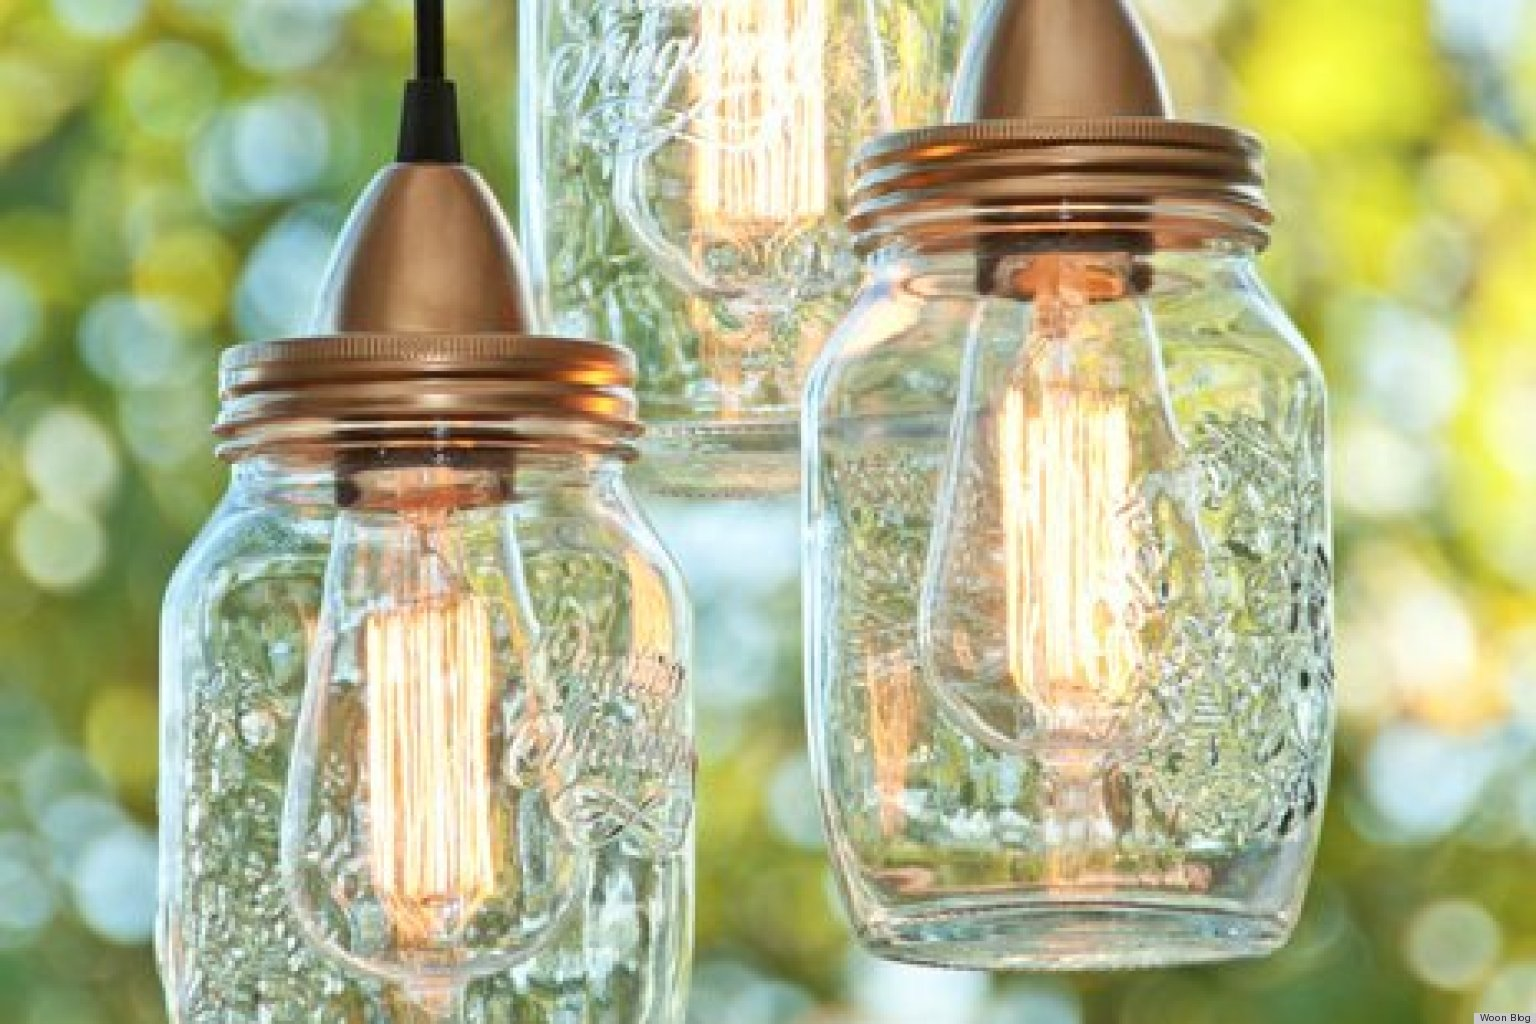 7 diy outdoor lighting ideas to illuminate your summer nights 7 diy outdoor lighting ideas to illuminate your summer nights photos huffpost mozeypictures Images